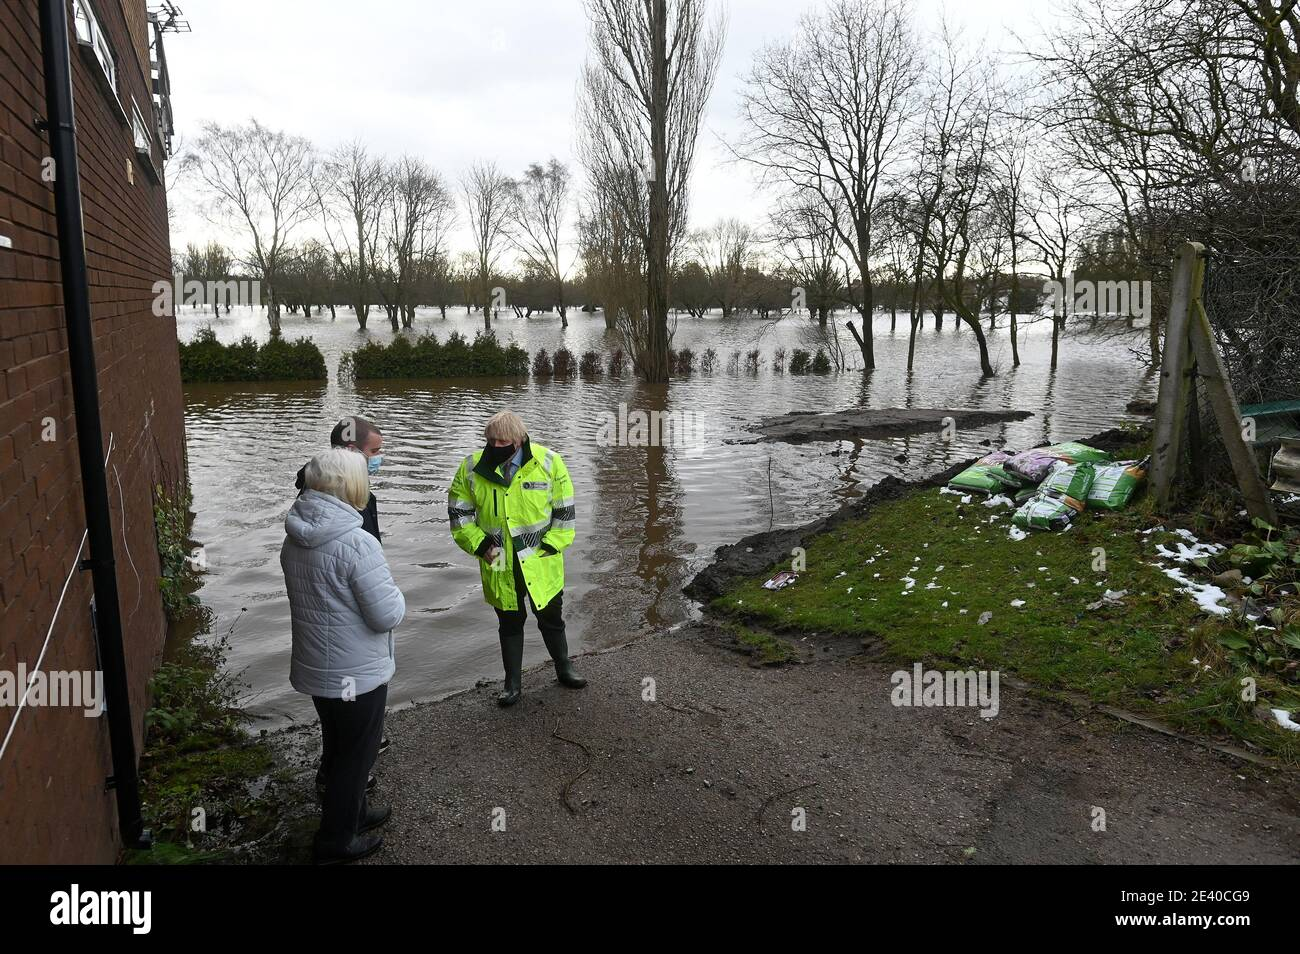 Britain's Prime Minister Boris Johnson talks with local residents during his visit to Withington in Manchester, as Storm Christoph brings heavy rains and flooding across the country, Britain January 21, 2021. Paul Ellis/Pool via REUTERS Stock Photo